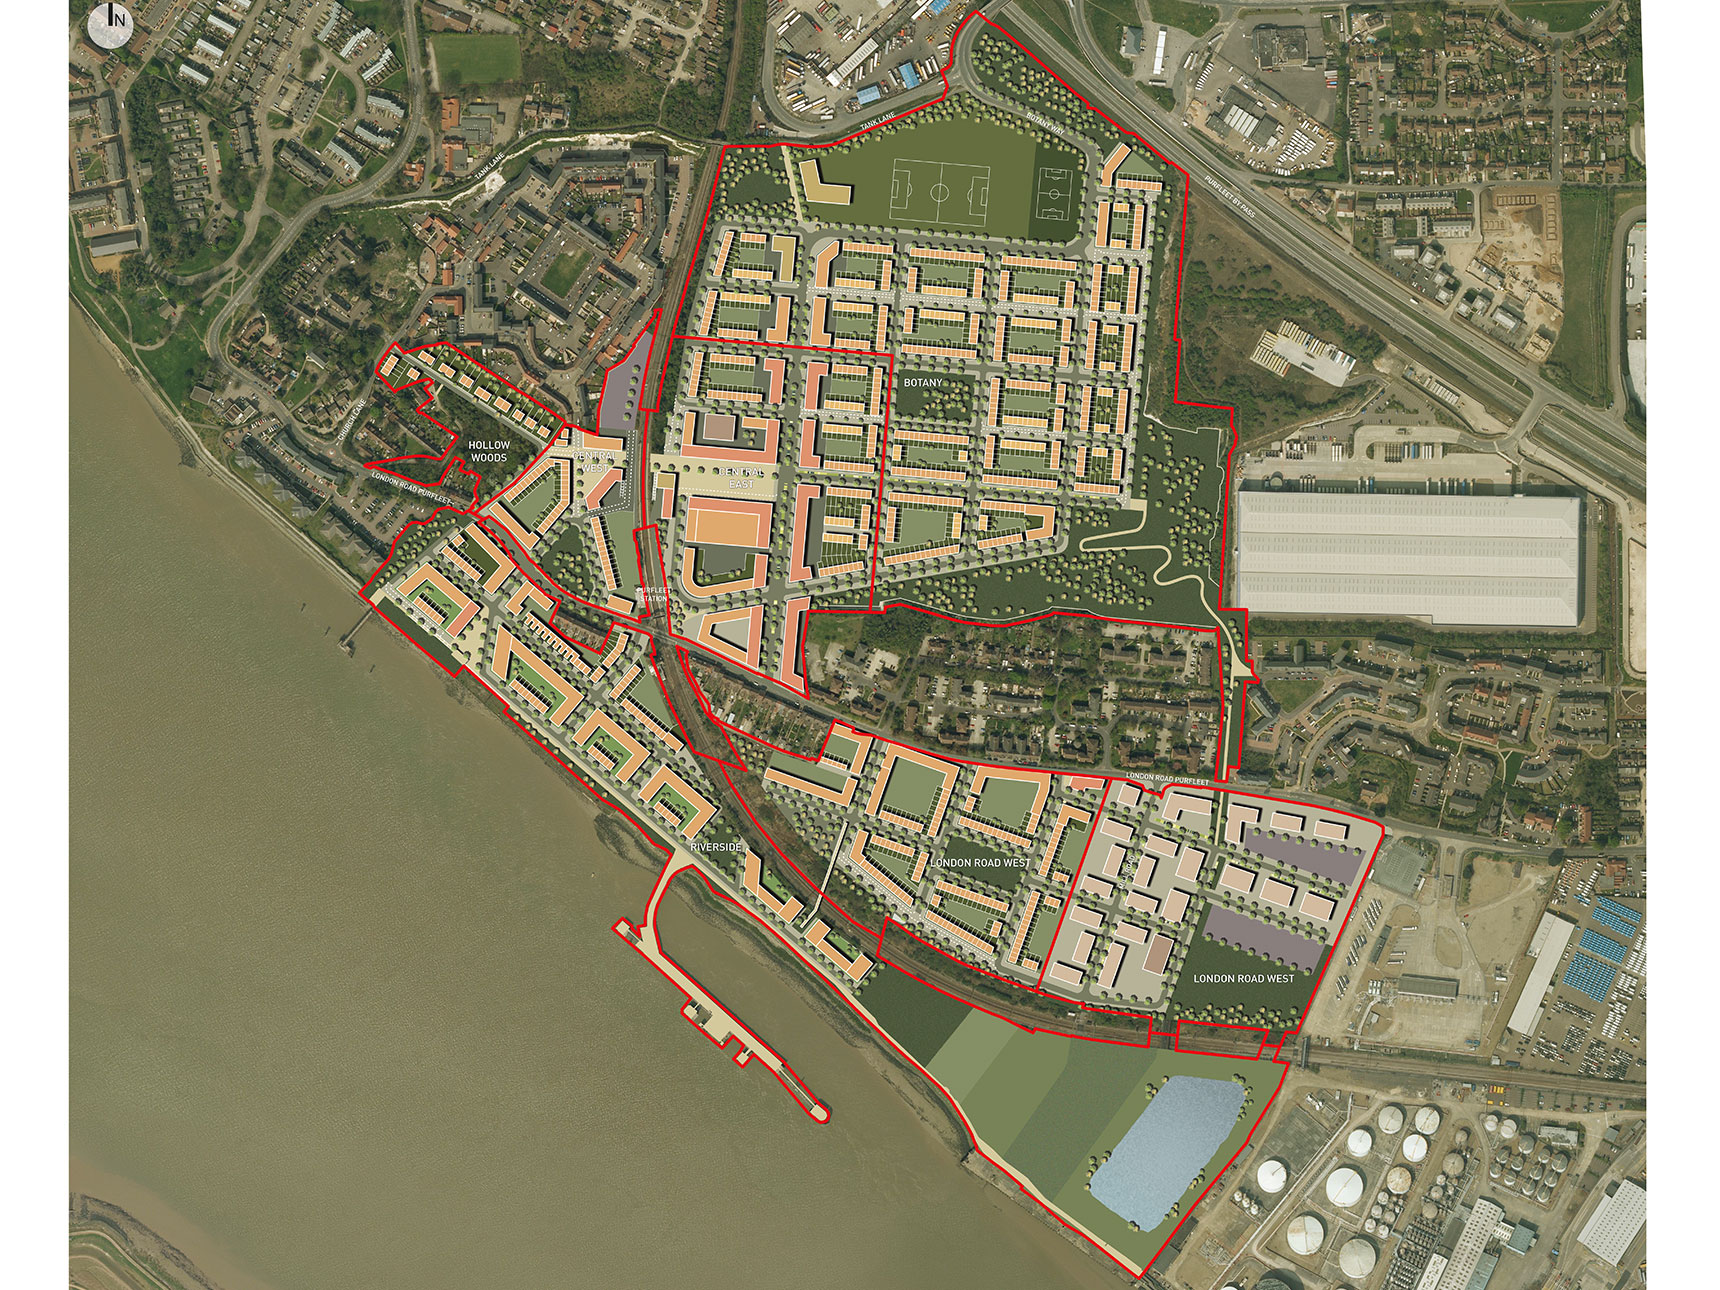 //uistudio.co.uk/wp-content/uploads/2018/01/3822_Purfleet_Masterplan_1720x1290.jpg